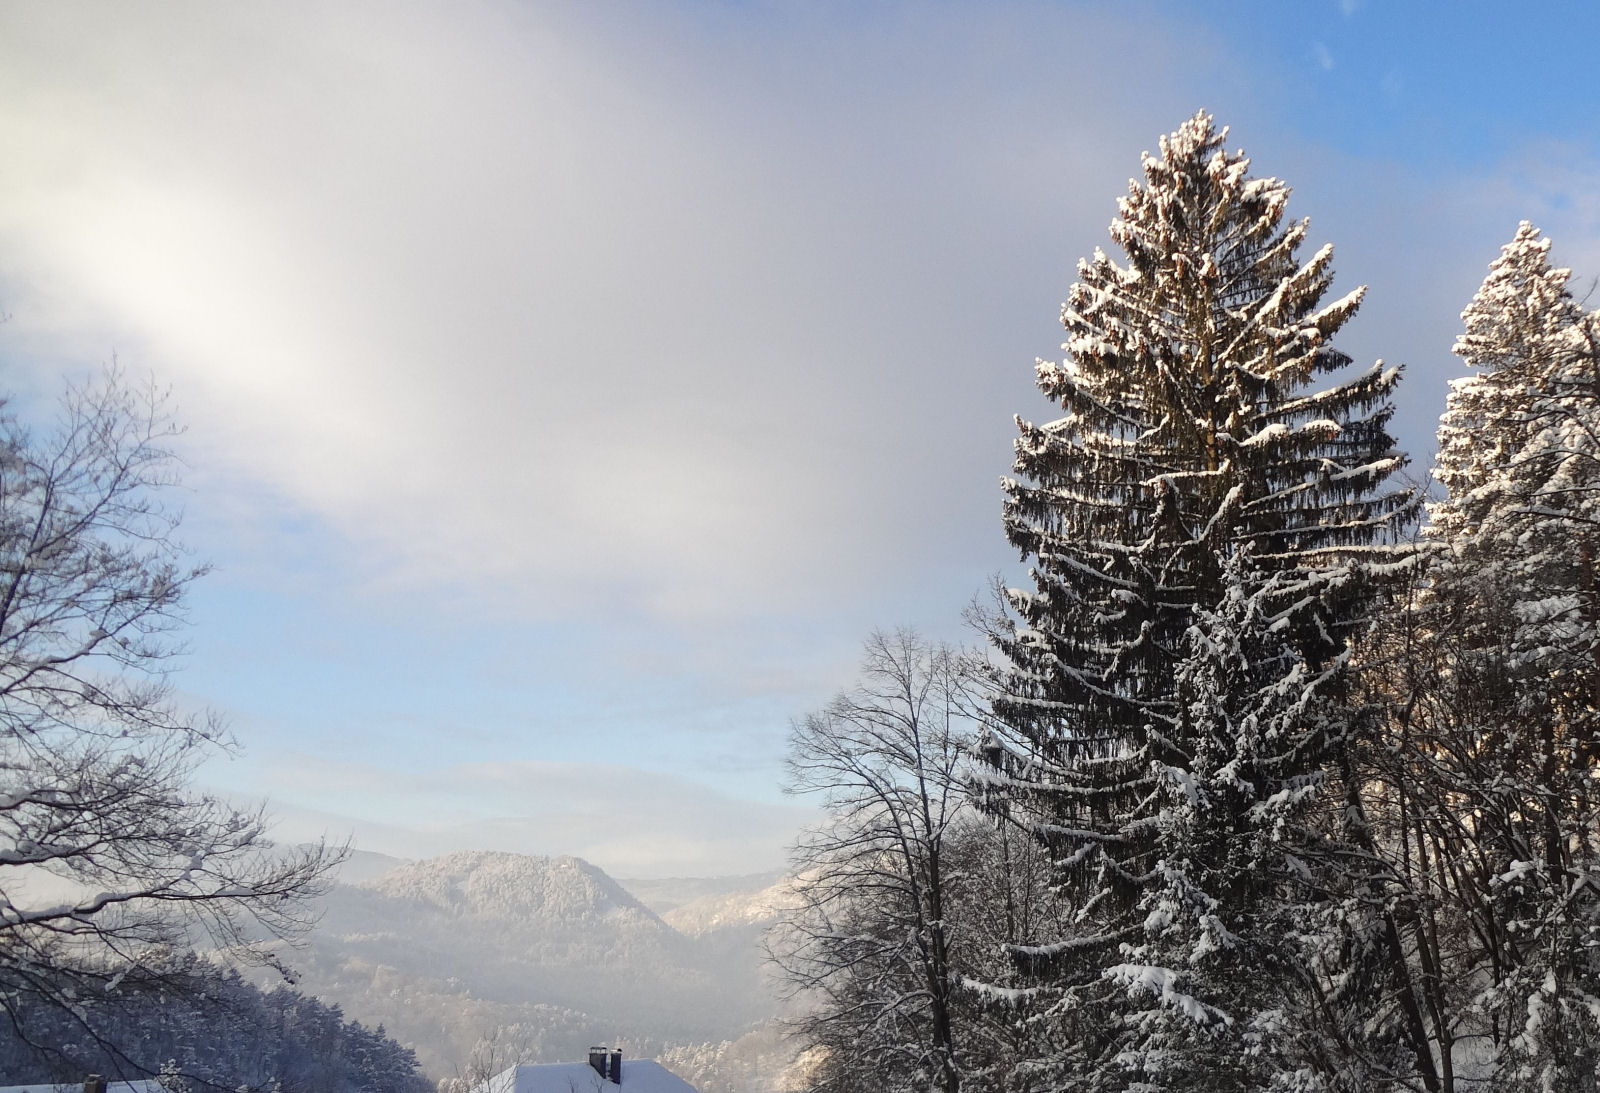 Mountains of the Slovenian Alps in winter